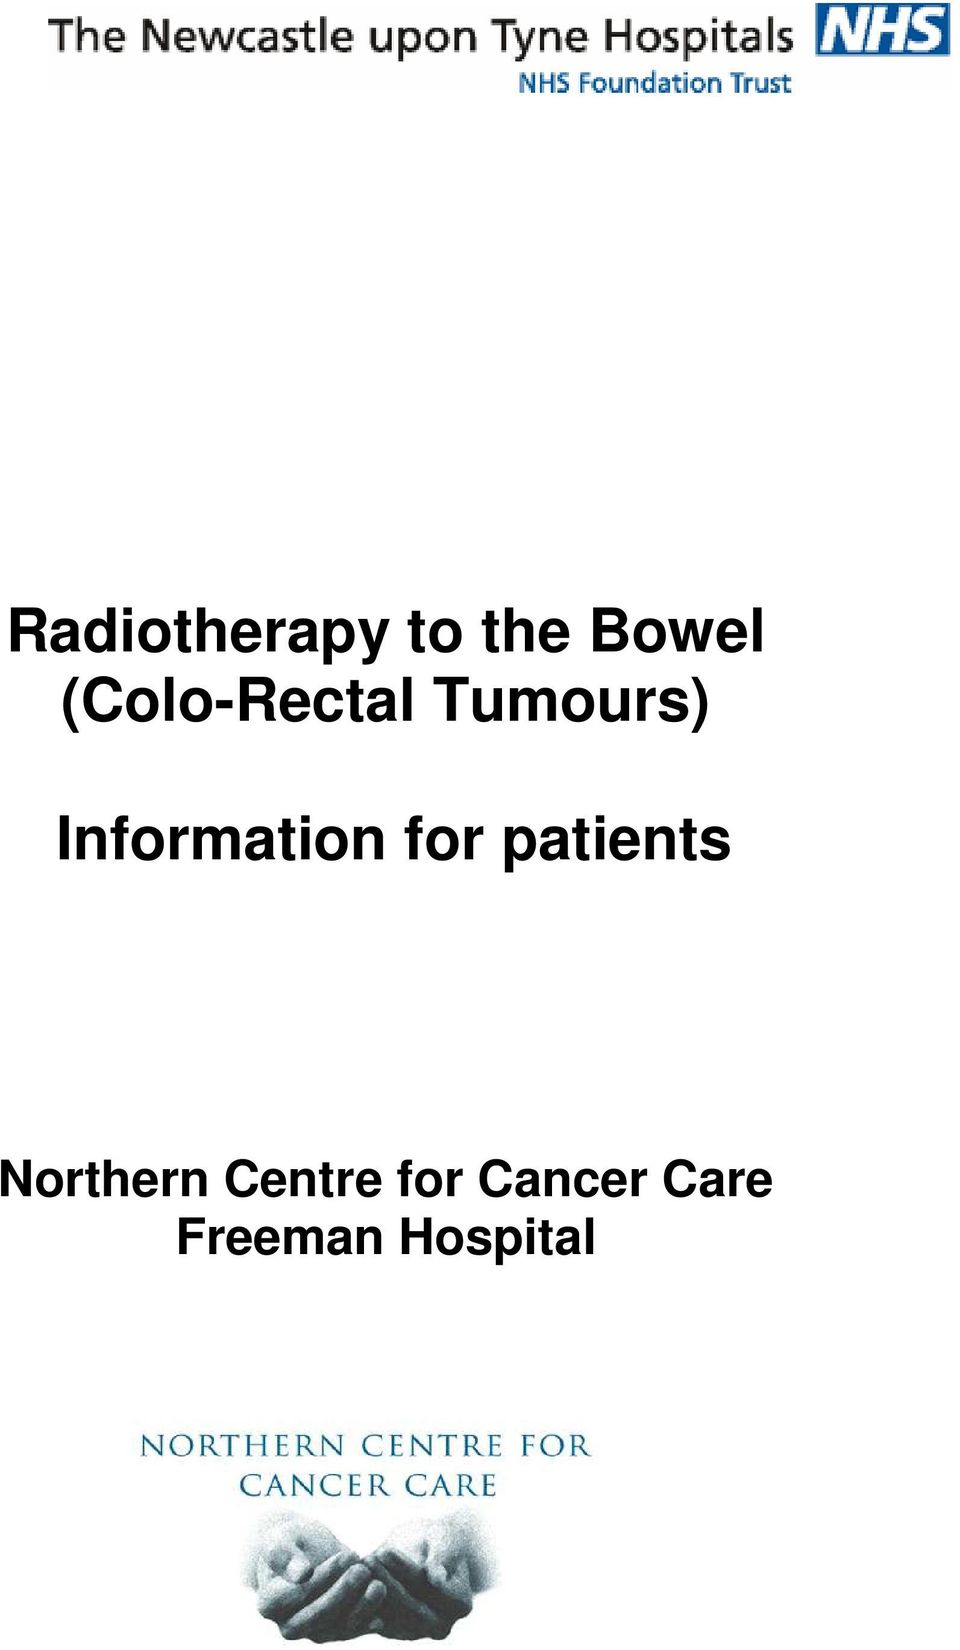 Information for patients